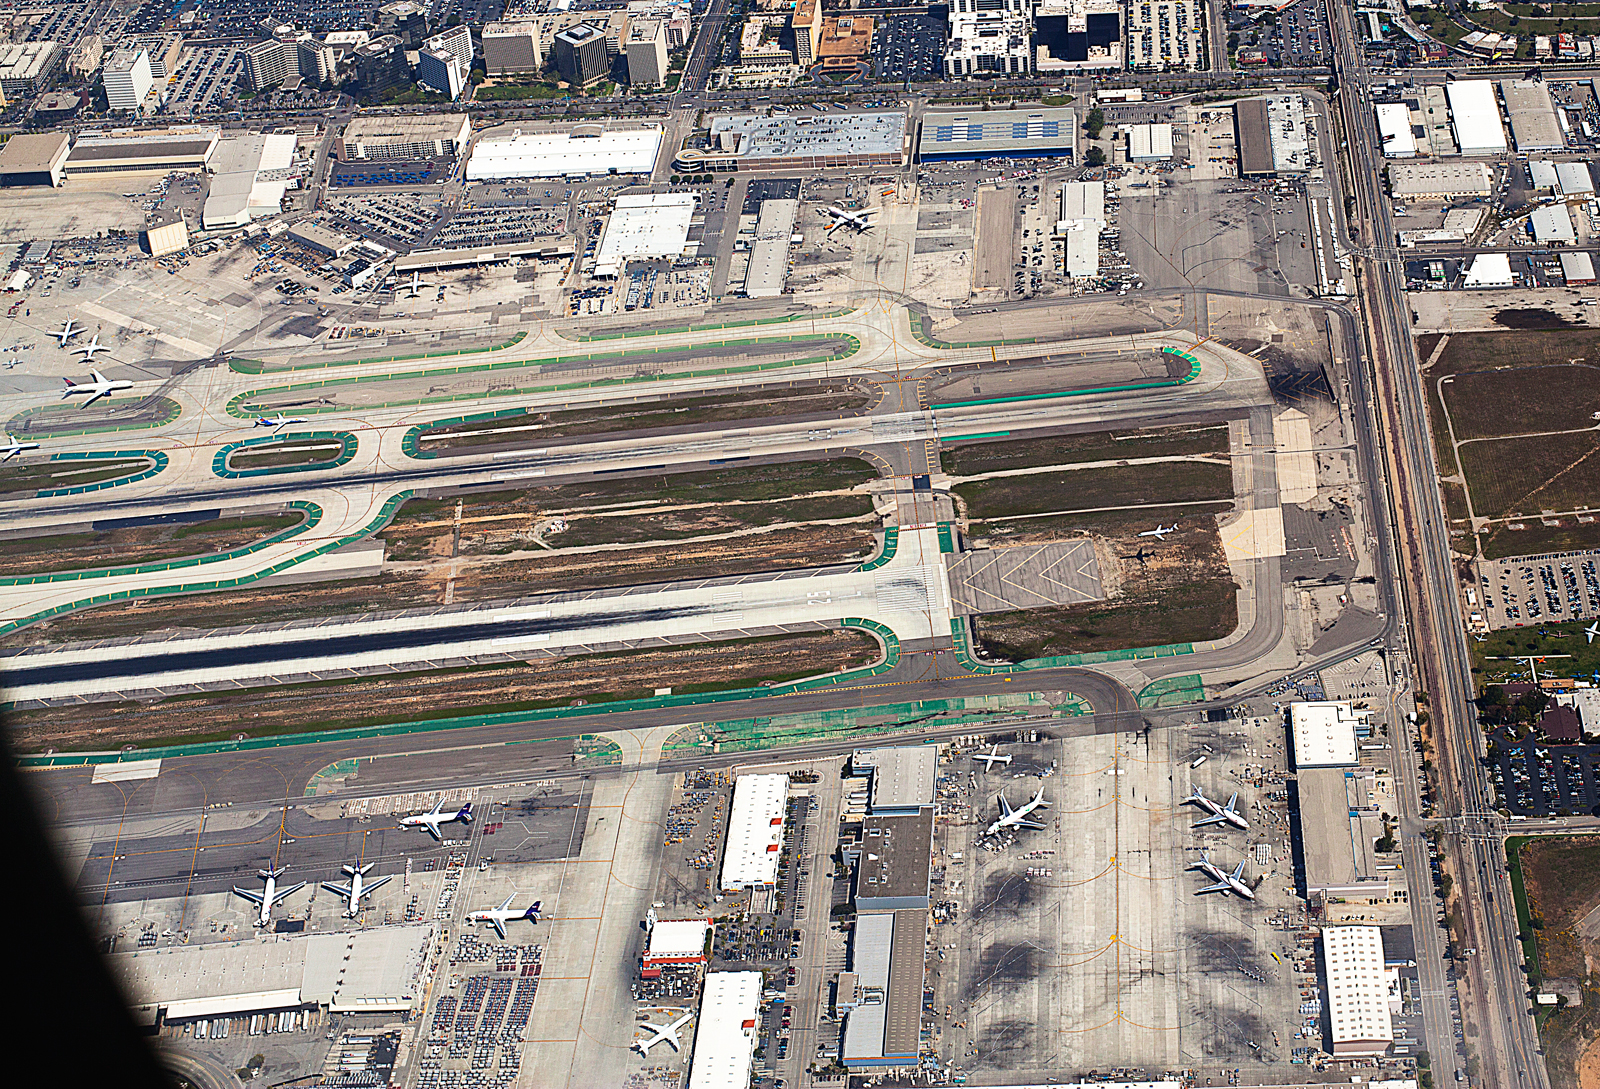 Taken at 3,000 feet over LAX as a McDonnell Douglas MD 90 comes into land RWY 25L 01